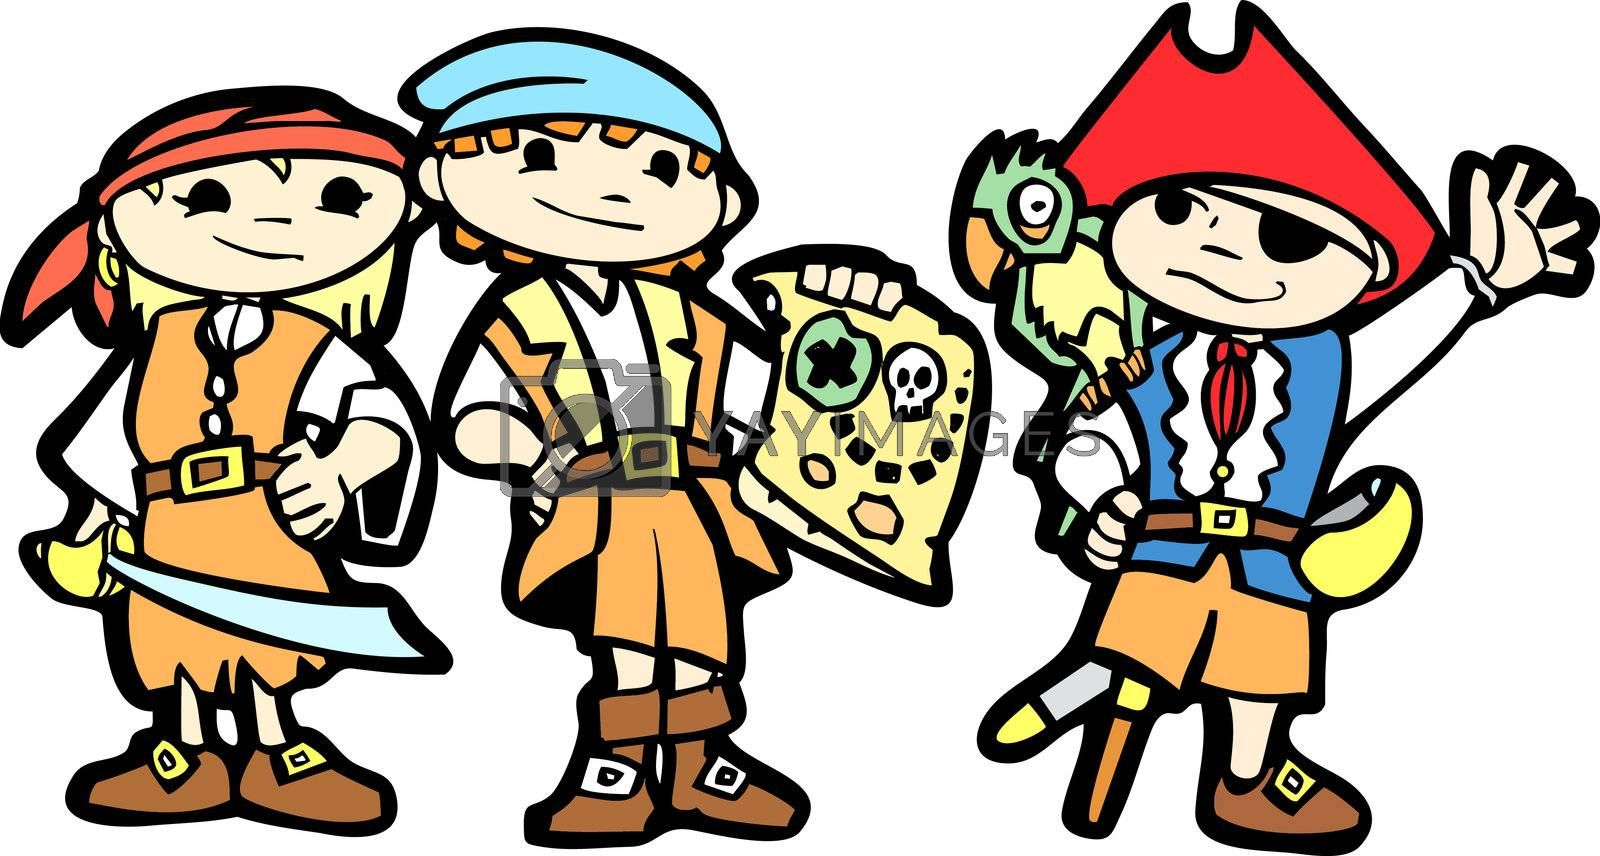 Children dress in pirate costumes with swords, parrots and maps.